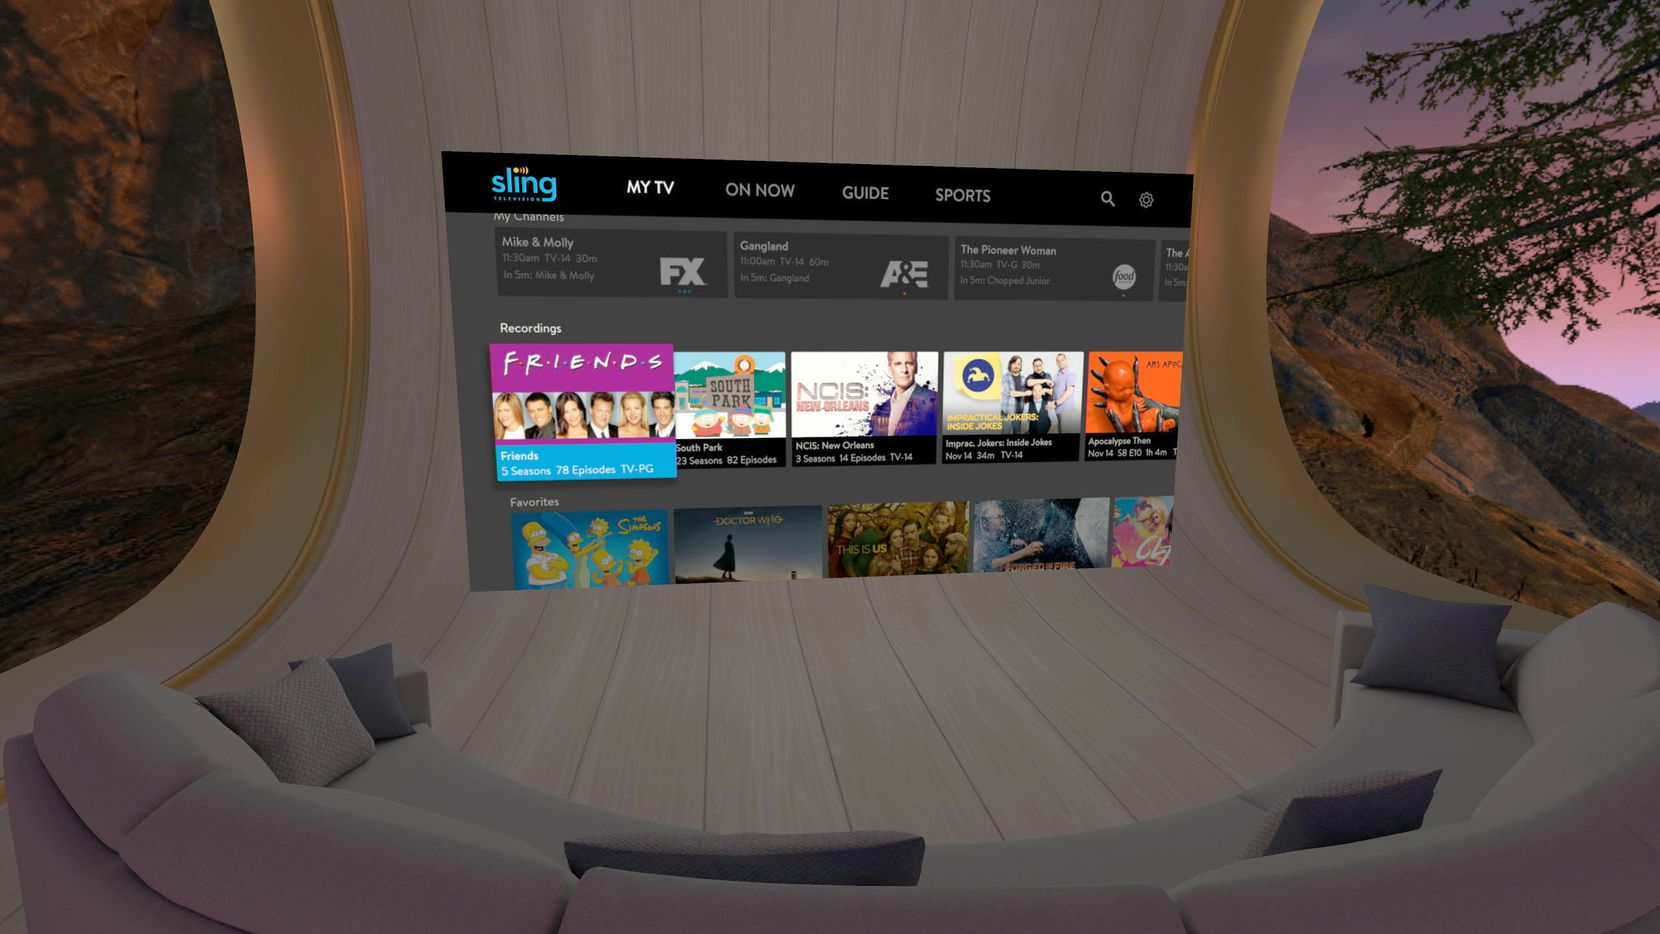 The Sling TV interface inside the Oculus Go goggles.